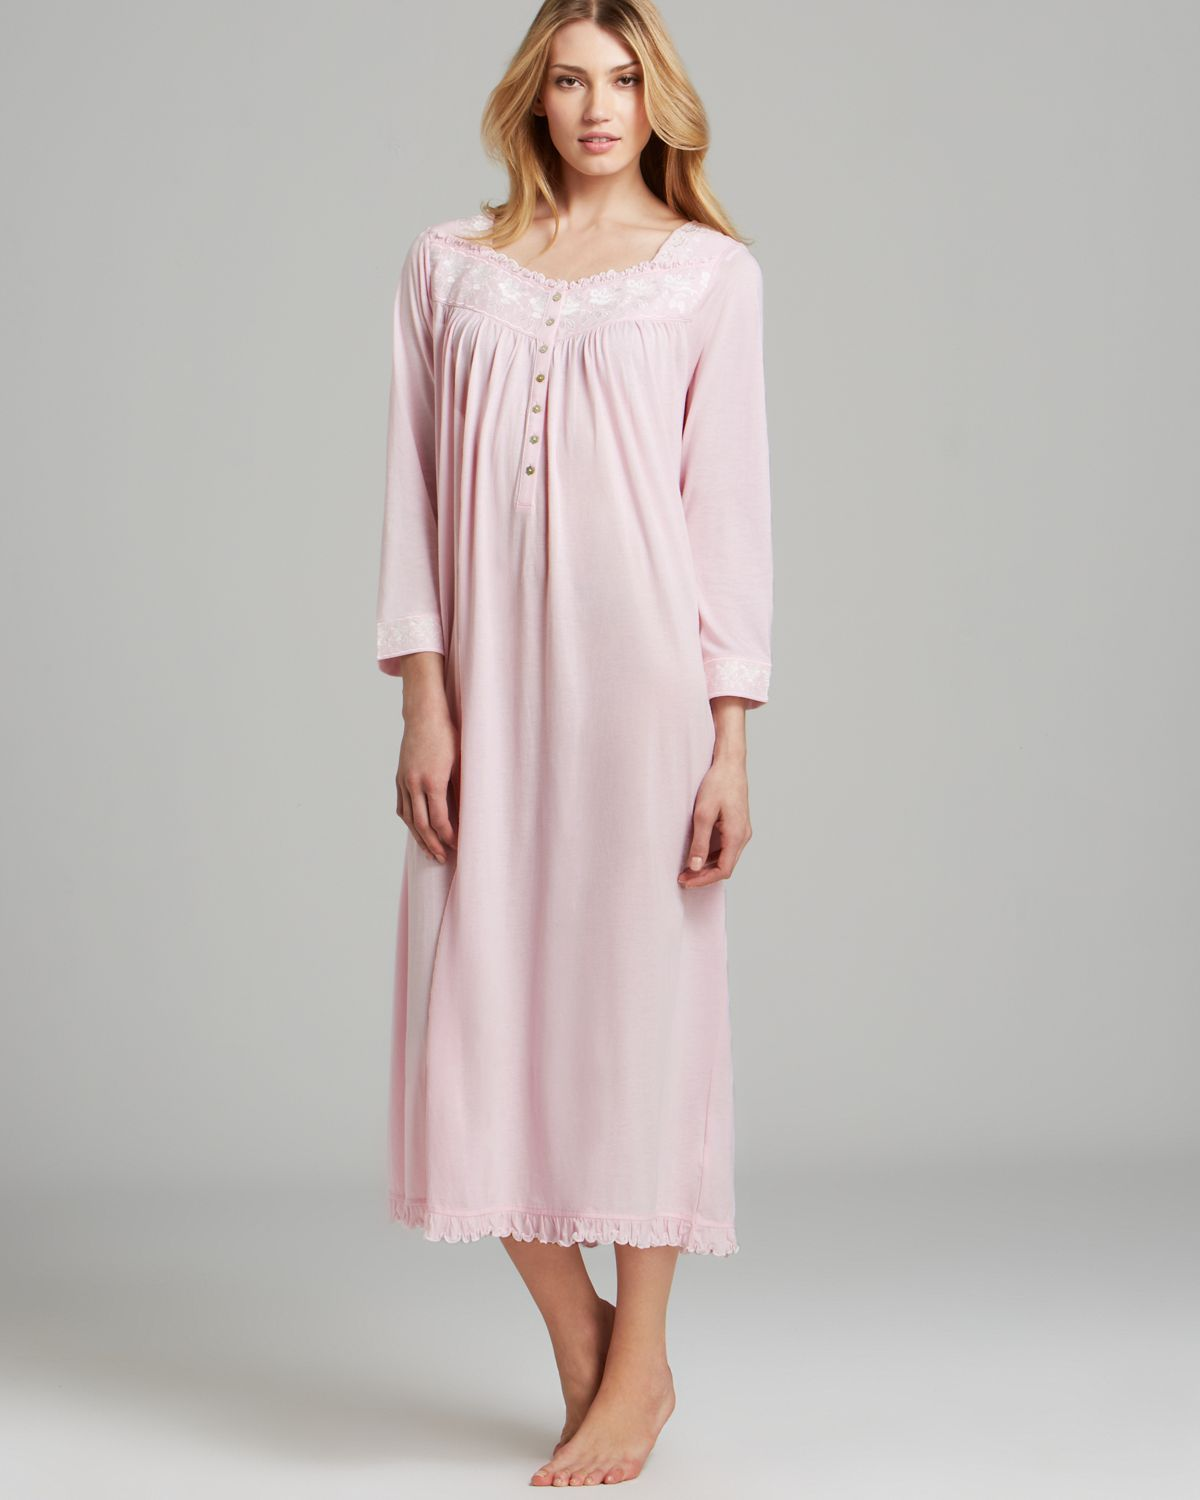 8c149a448a Lyst - Eileen West Blissful Poetry Long Sleeve Ballet Nightgown in Pink